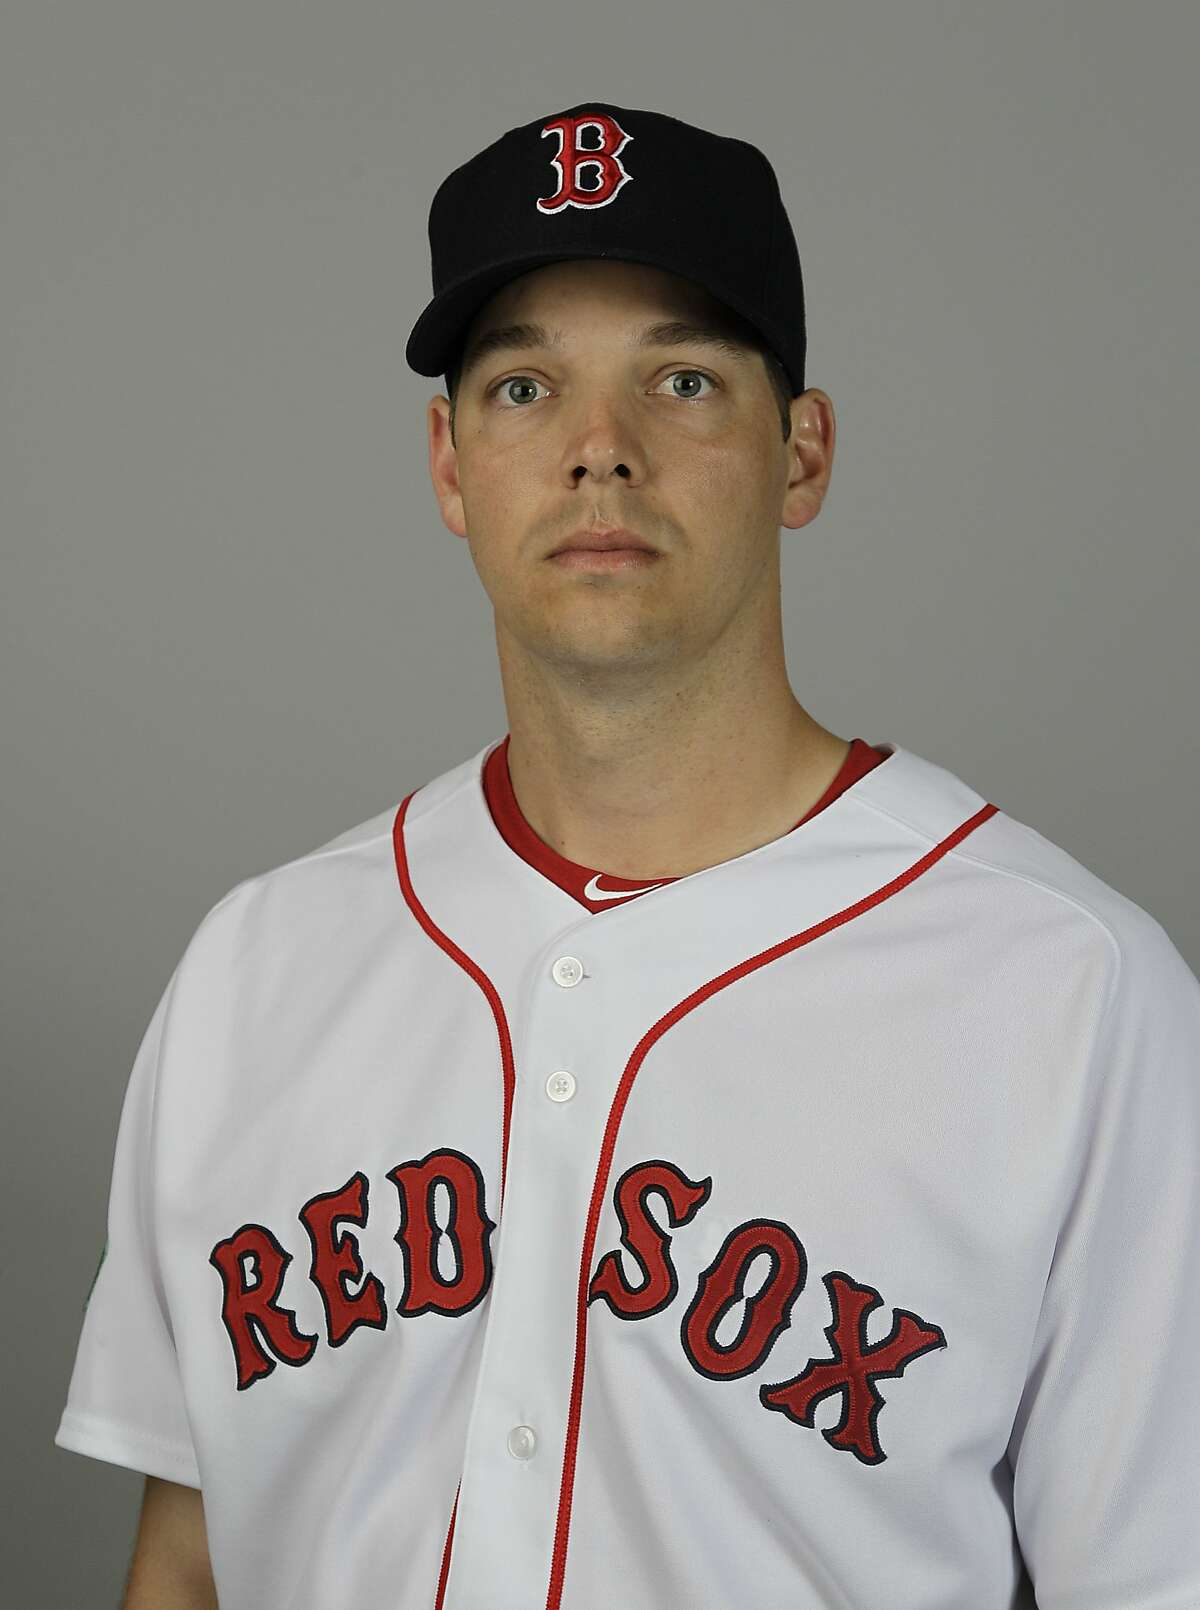 FILE - This is a 2012 file photo showing Boston Red Sox baseball player Rich Hill. Hill starts spring training with a heavy heart. Hill reported to Boston's camp on Thursday, March 6, 2014, following the death of son Brooks, who was less than 2 months old when he died on Feb. 24. (AP Photo/David Goldman/File)